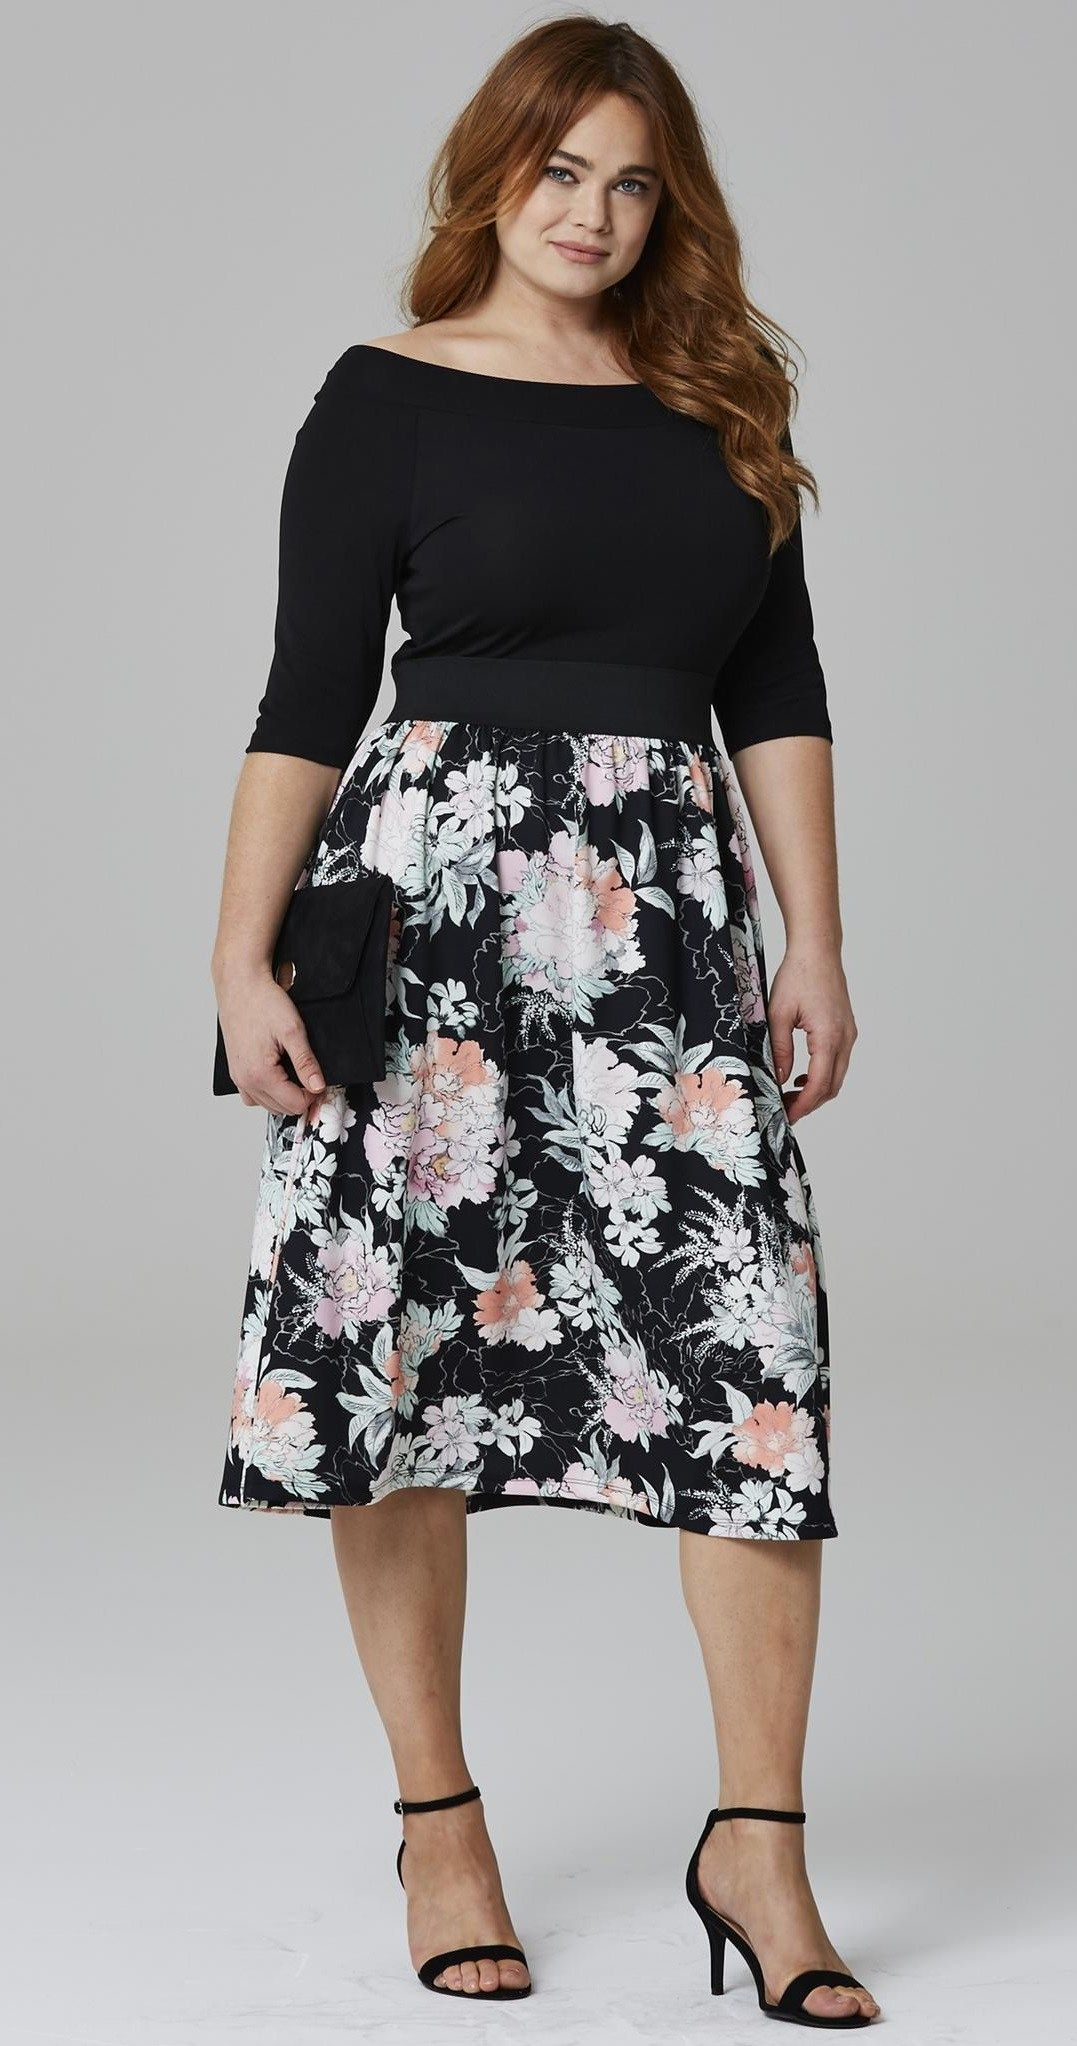 36 Plus Size Wedding Guest Dresses With Sleeves Alexa Webb Wedding Attire Guest Plus Size Cocktail Dresses Dresses To Wear To A Wedding